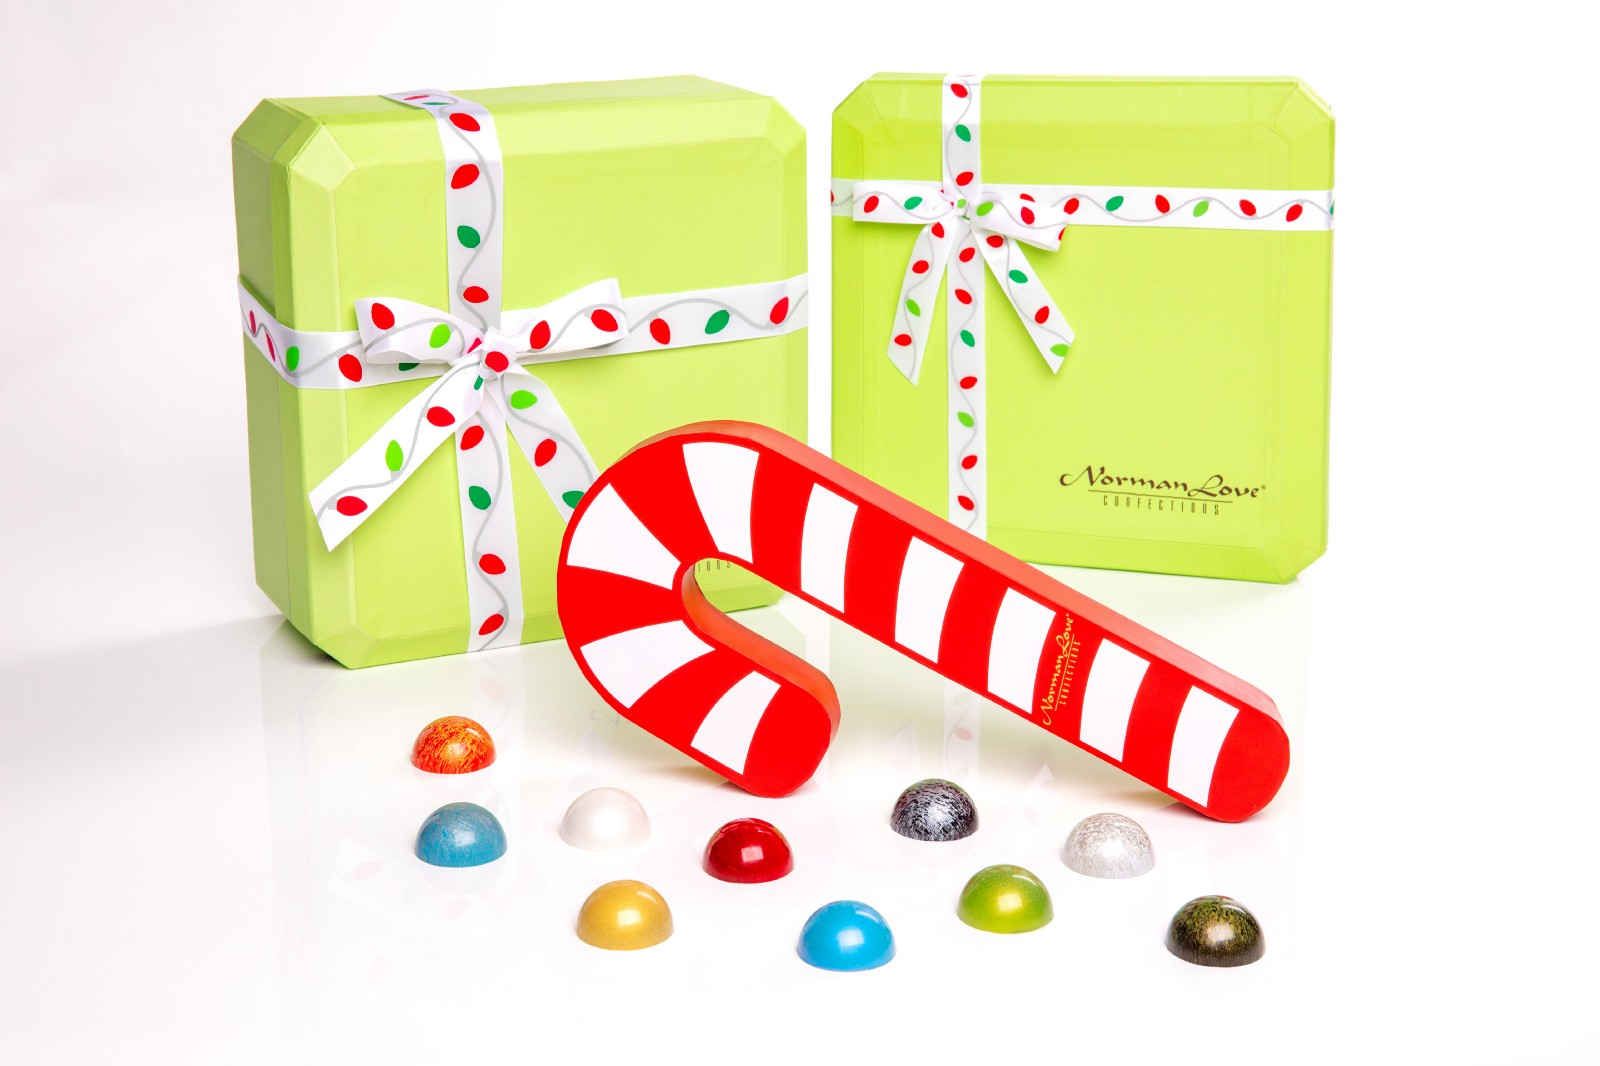 Give The Gift Of Chocolate This Holiday Season With Norman Love